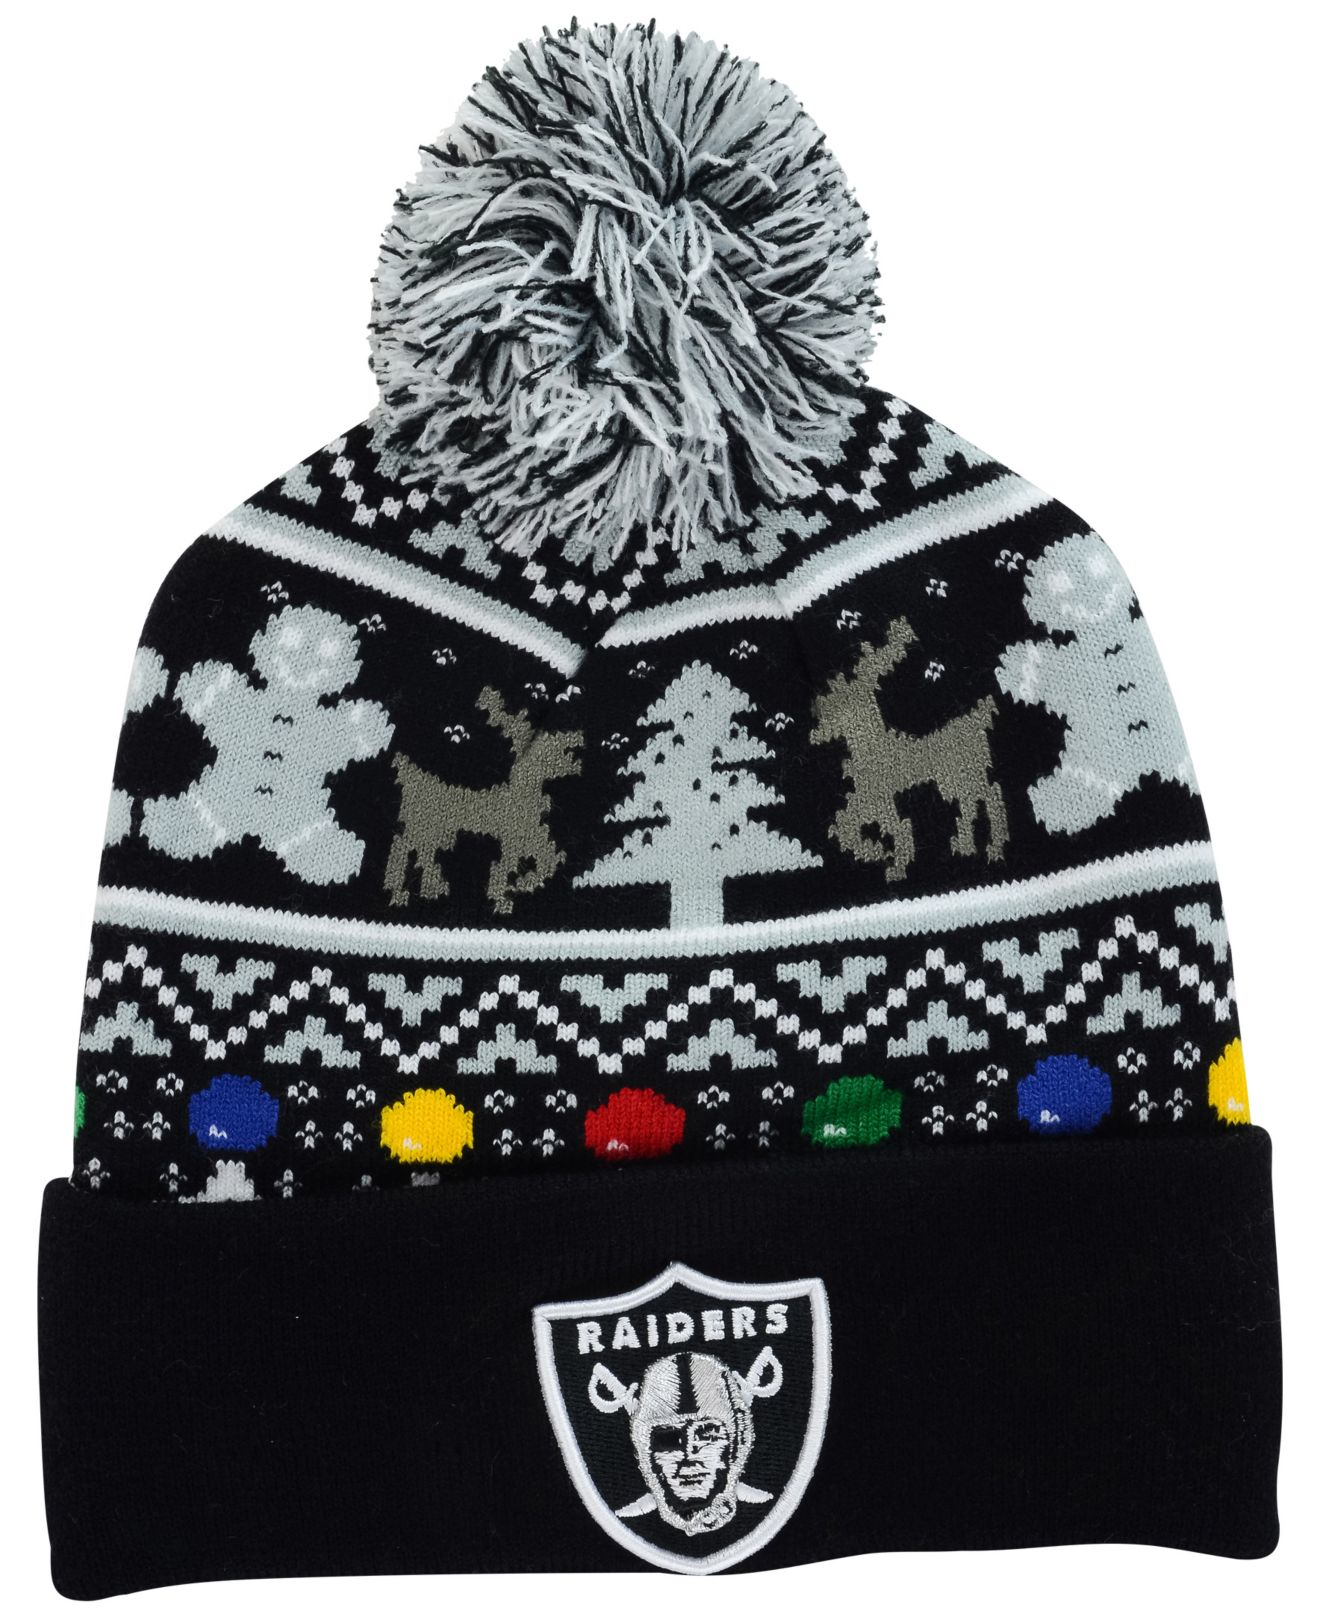 Lyst - Ktz Oakland Raiders Christmas Sweater Pom Knit Hat in Black ...